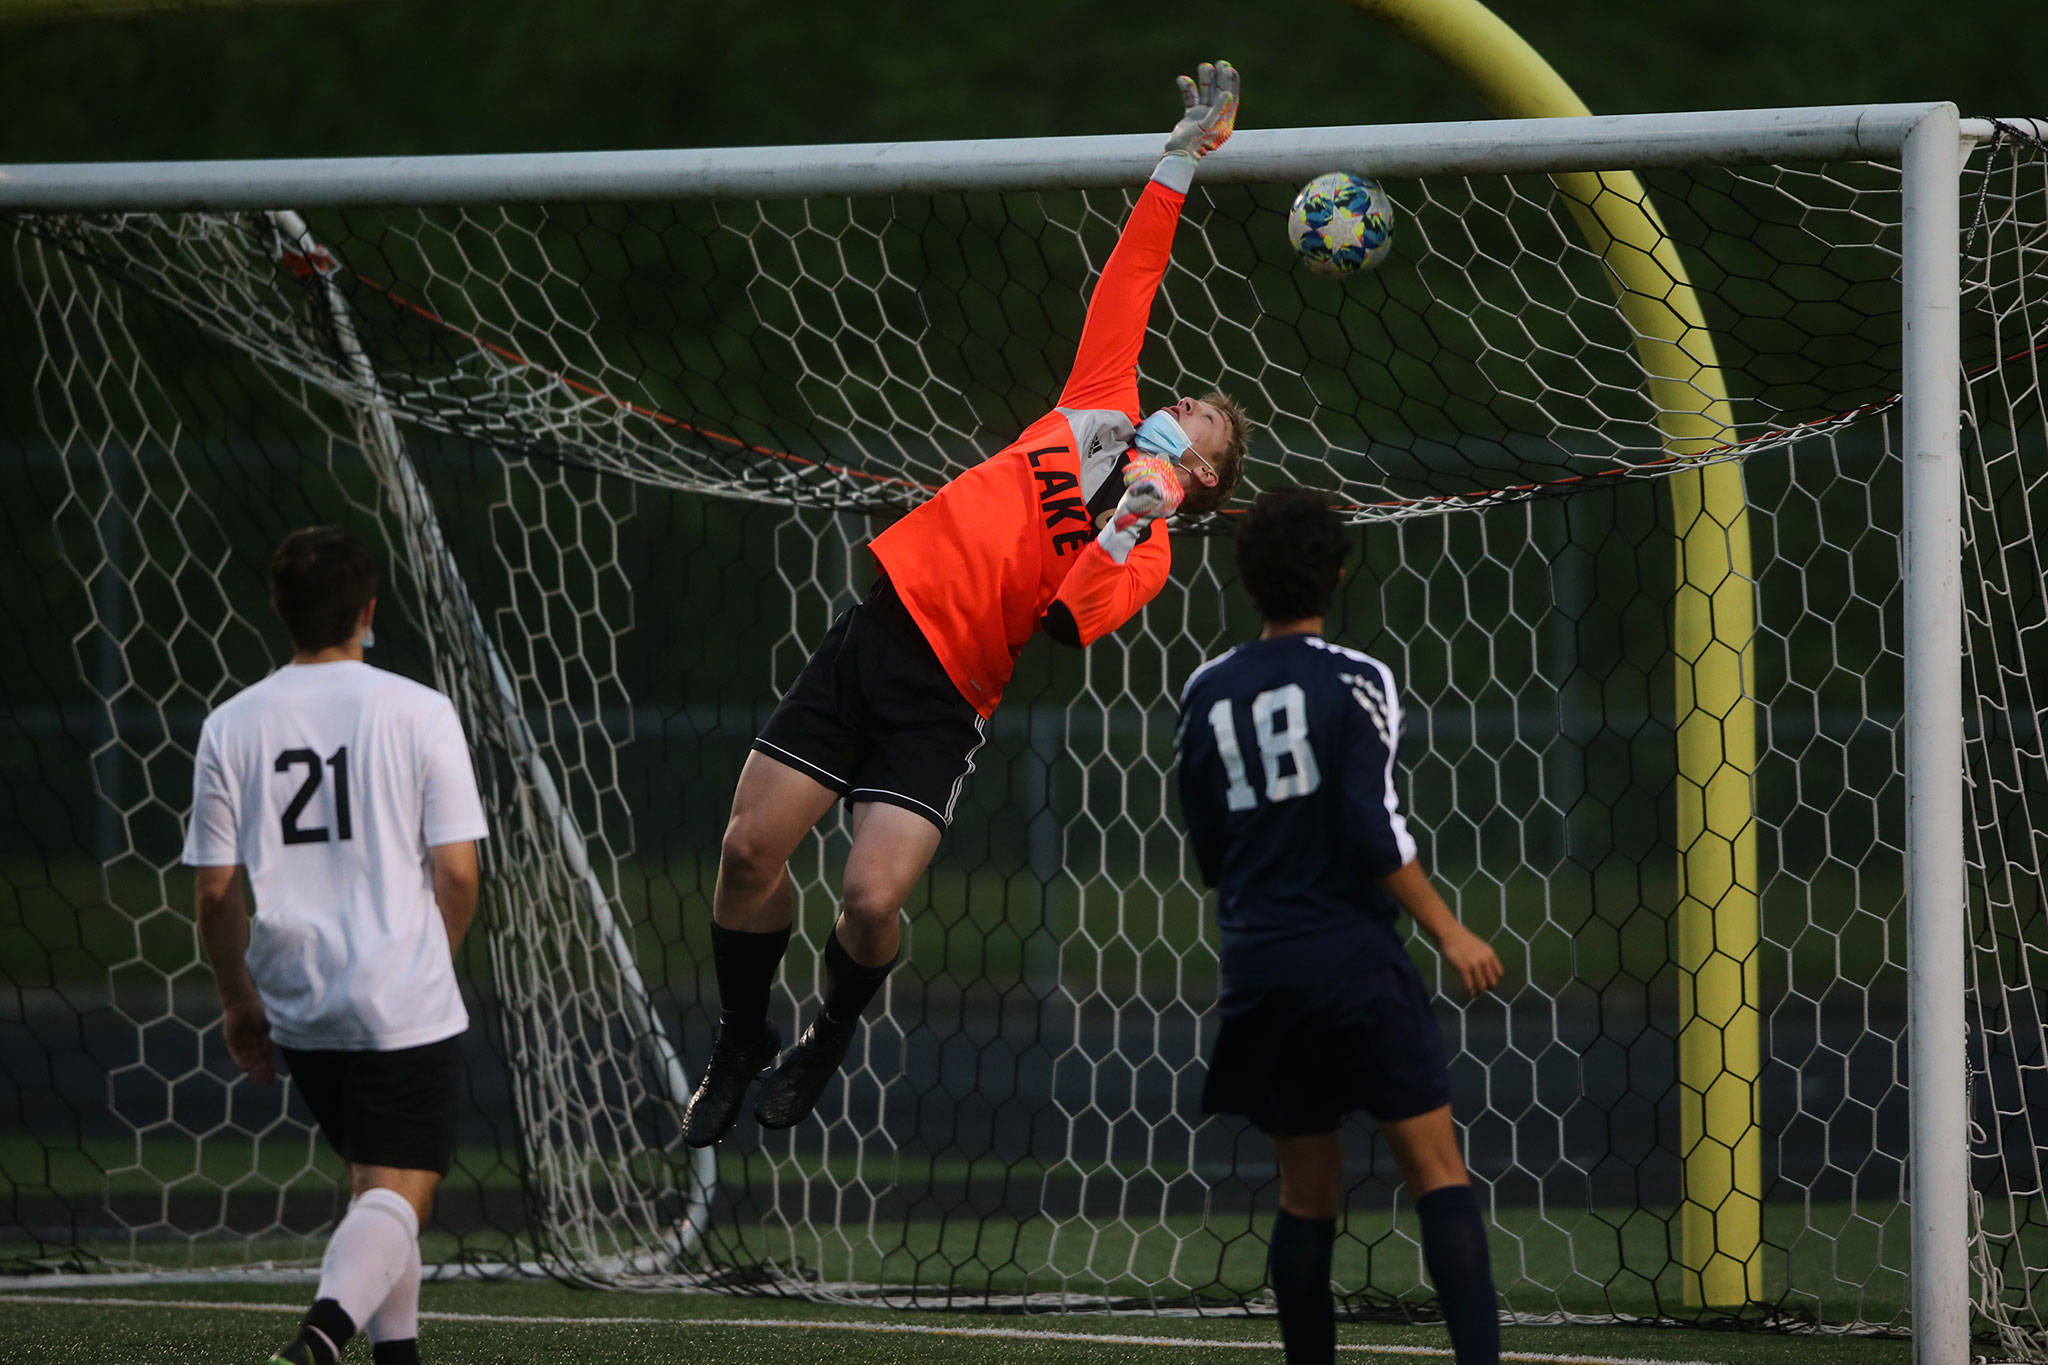 Lake Stevens' Tanner Jordan leaps but misses the ball for an Arlington goal as Arlington beat Lakes Stevens 2-1 in a boys soccer match on Monday, May 3, 2021 in Arlington, Washington. (Andy Bronson / The Herald)